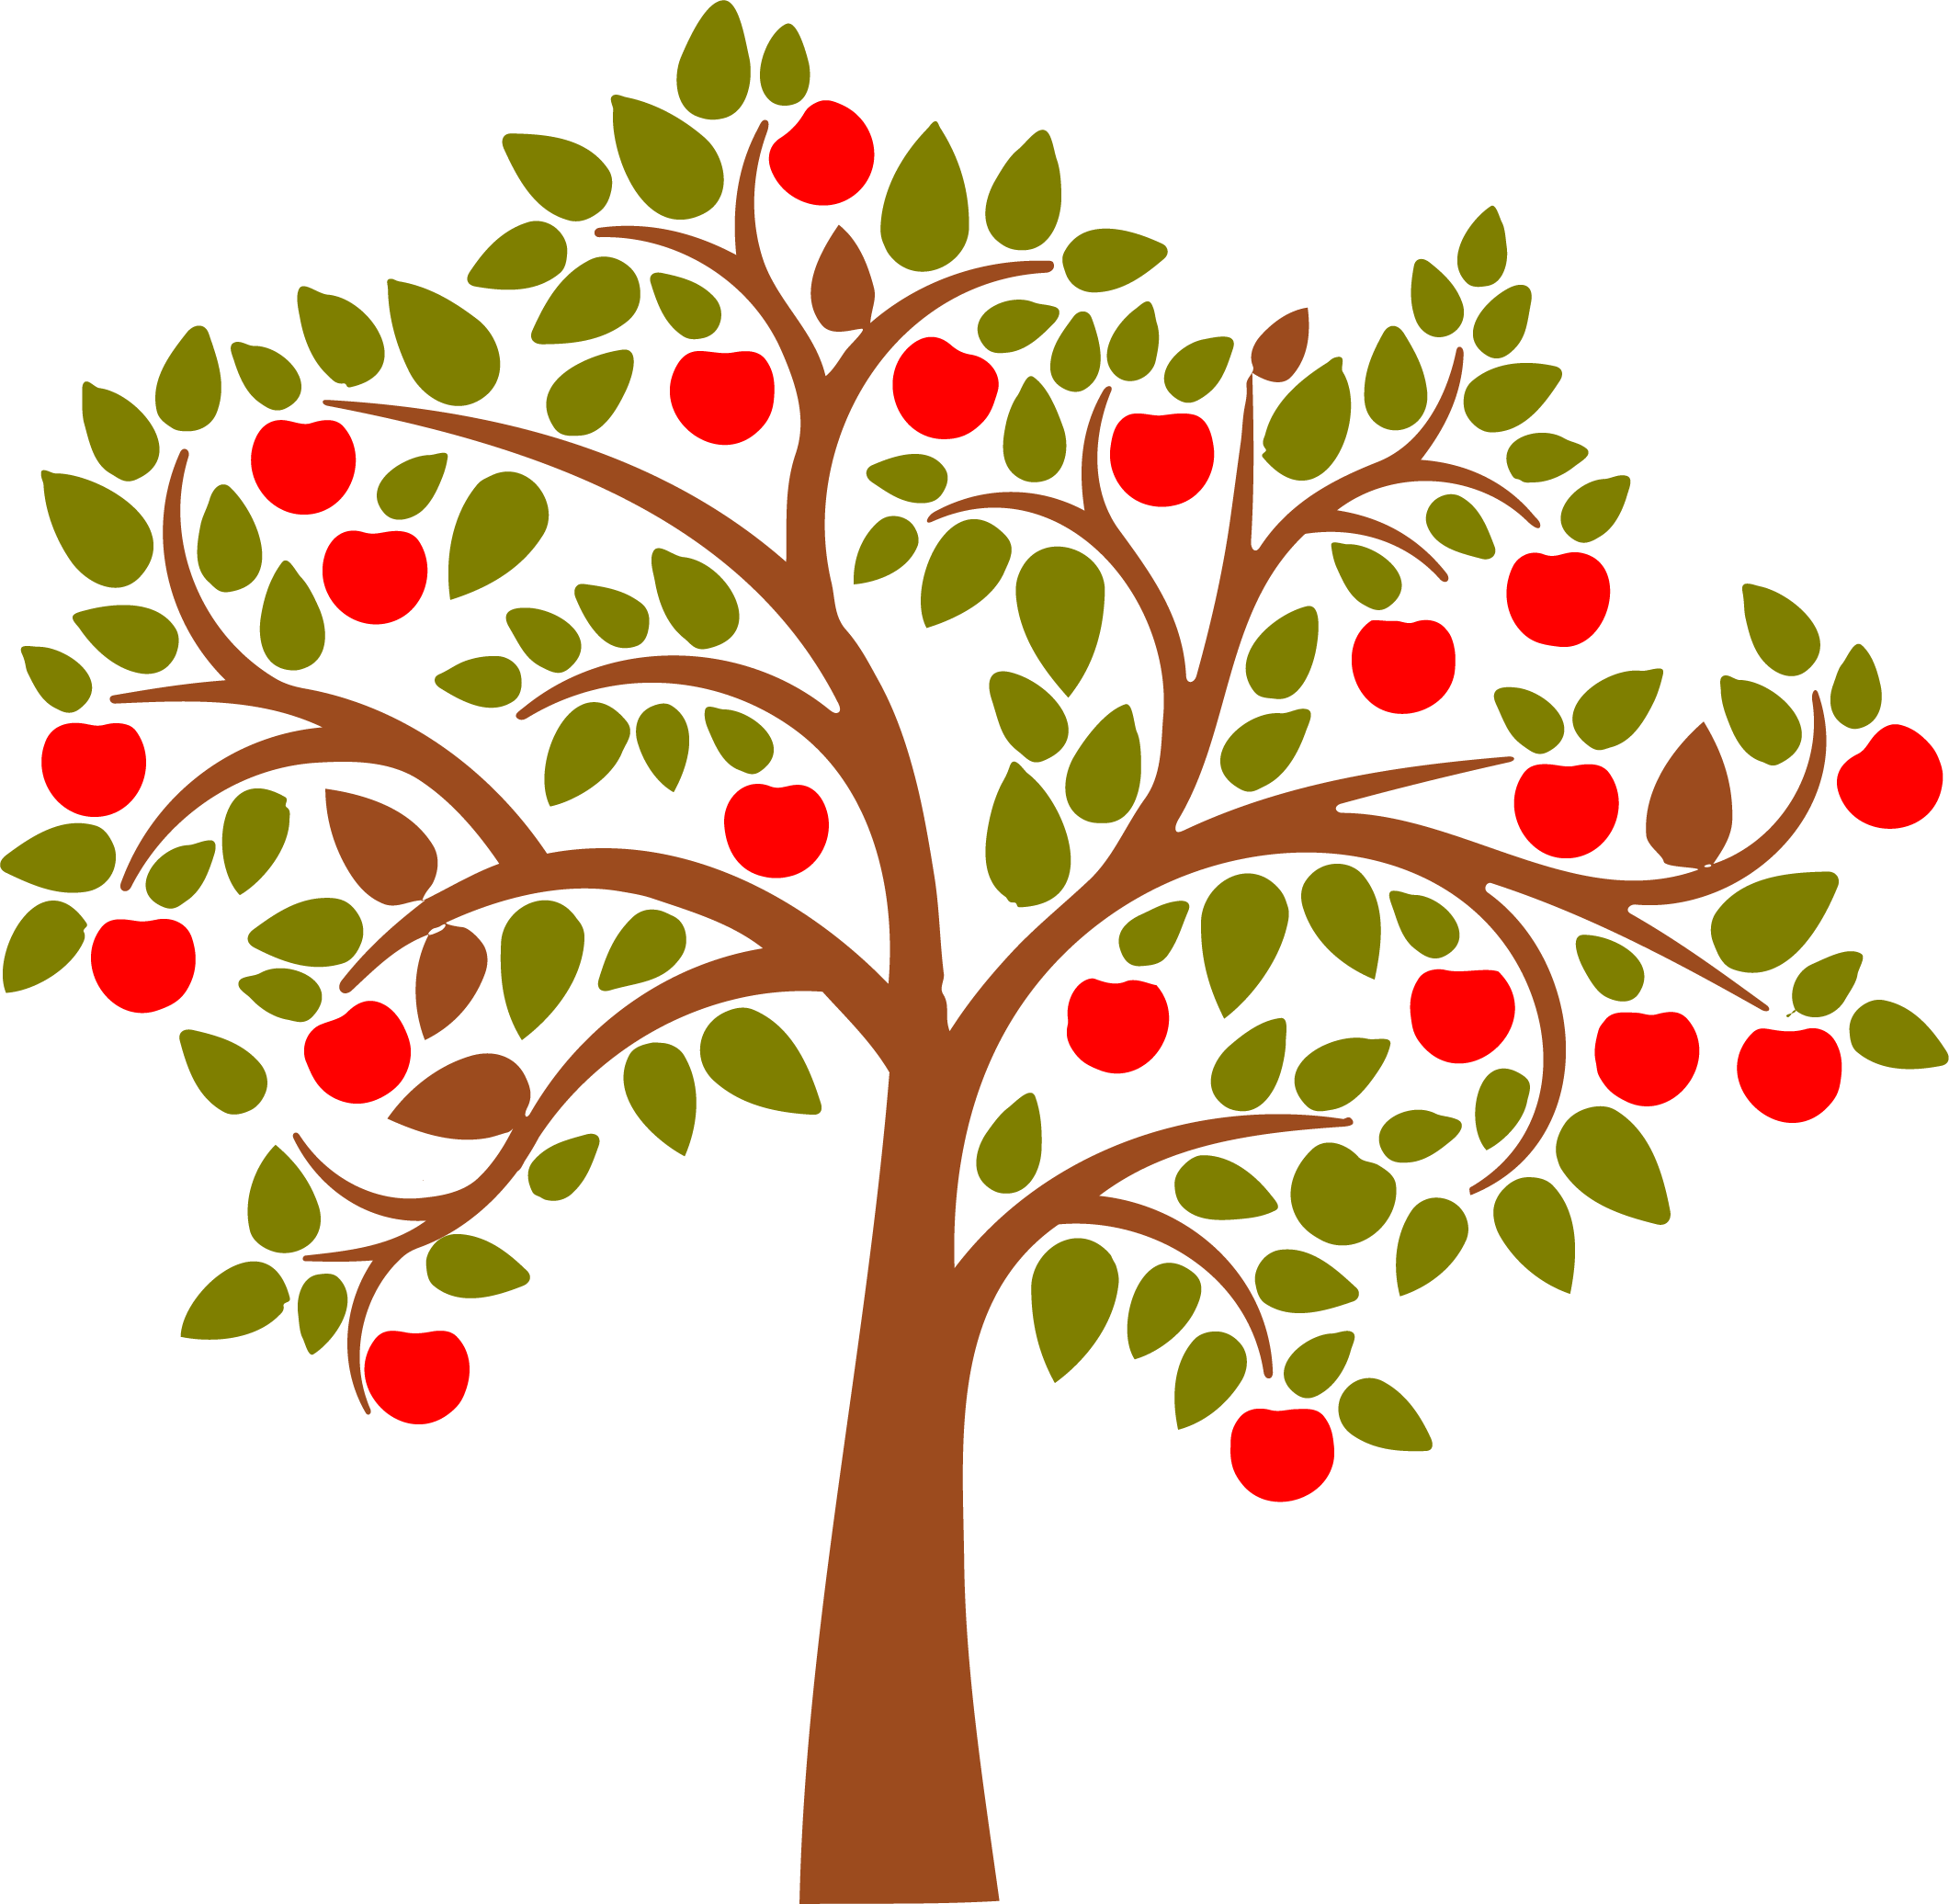 Free tree with roots clipart clipart library stock Apple Tree Leaves Clipart Free & Apple Tree Leaves Clip Art Free ... clipart library stock